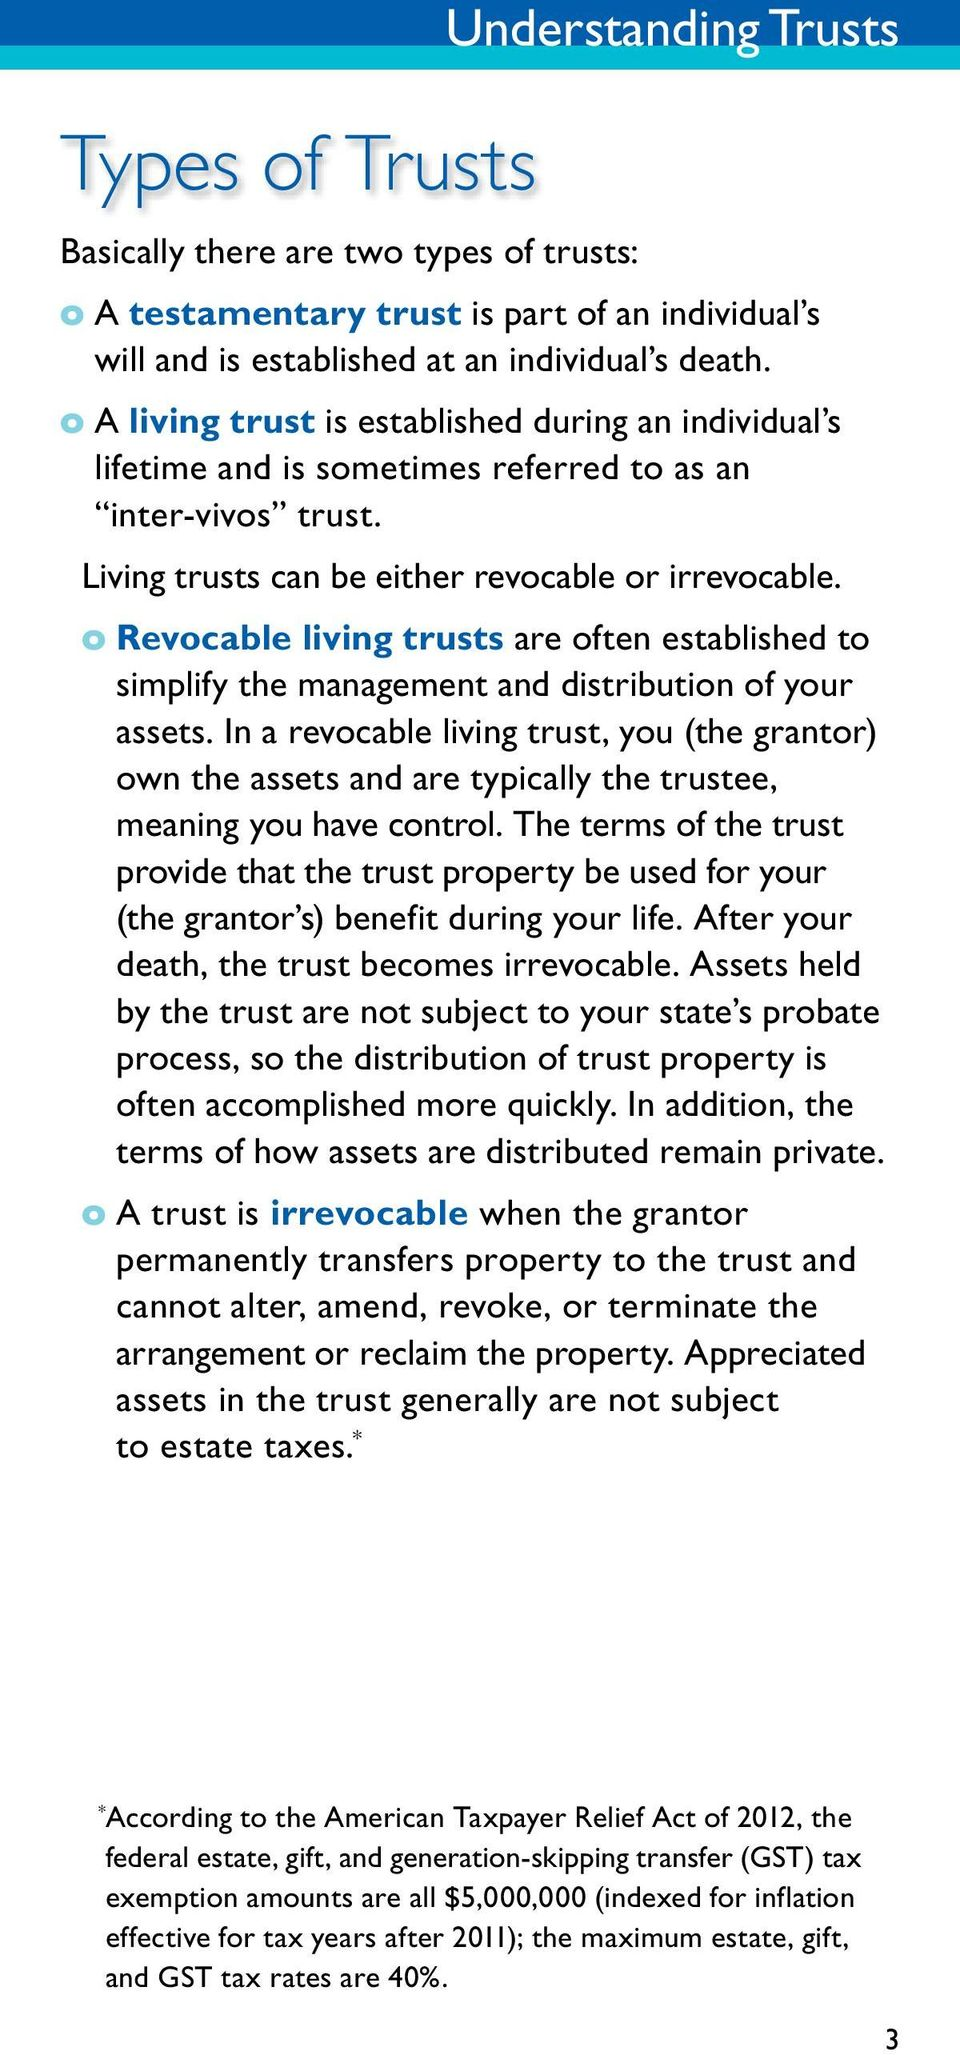 o Revocable living trusts are often established to simplify the management and distribution of your assets.